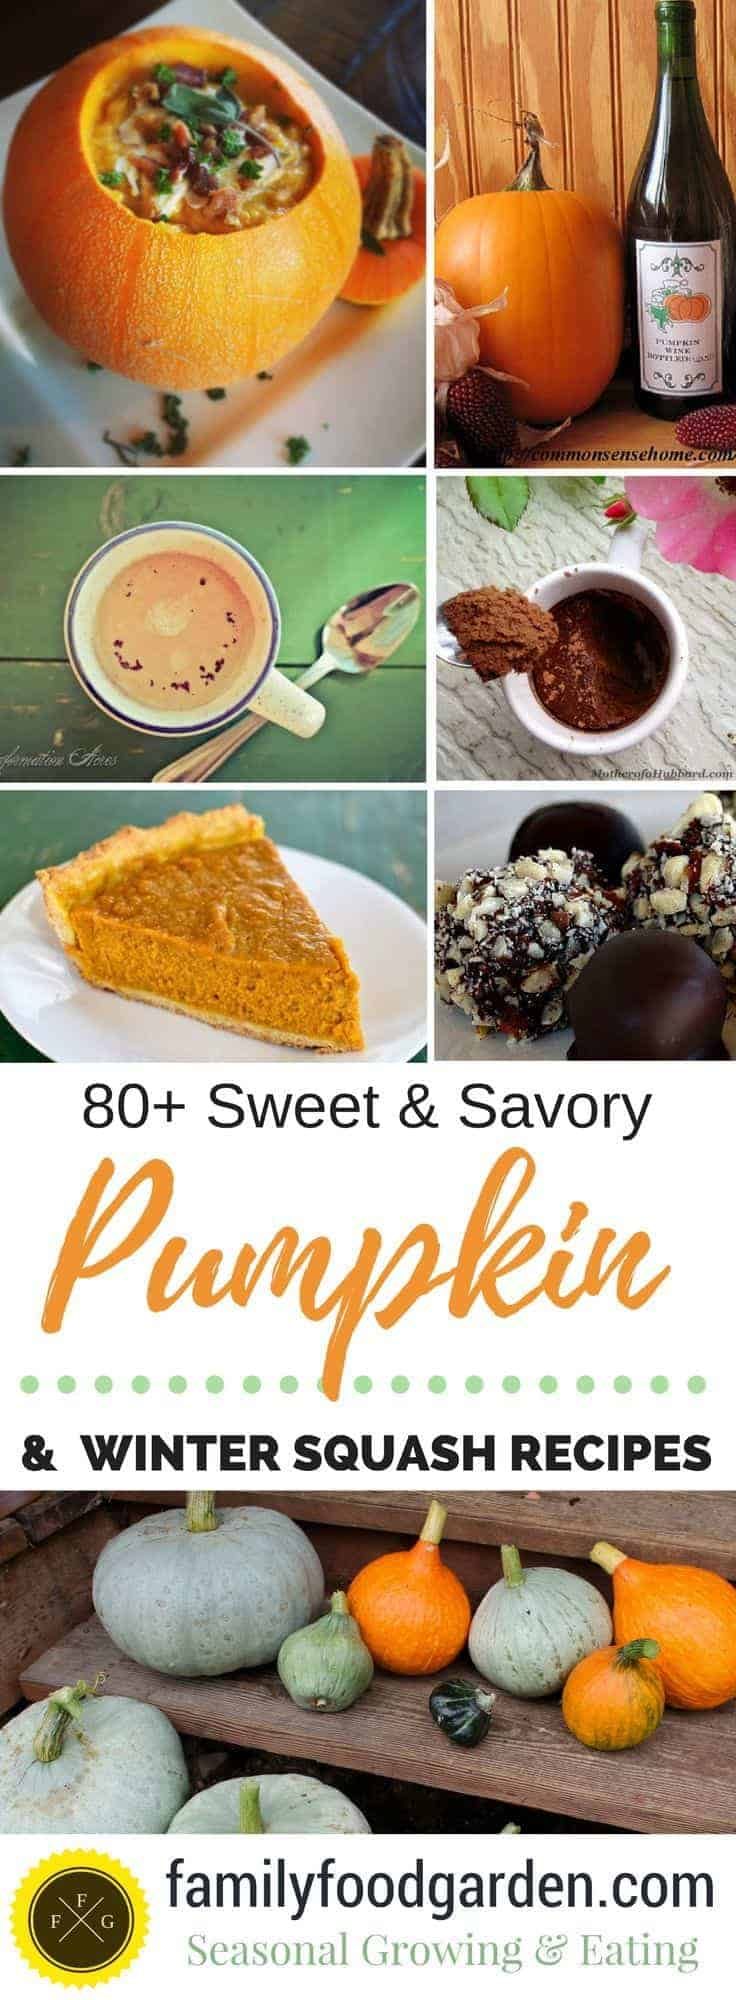 Sweet & Savoury Pumpkin and Winter Squash Recipes